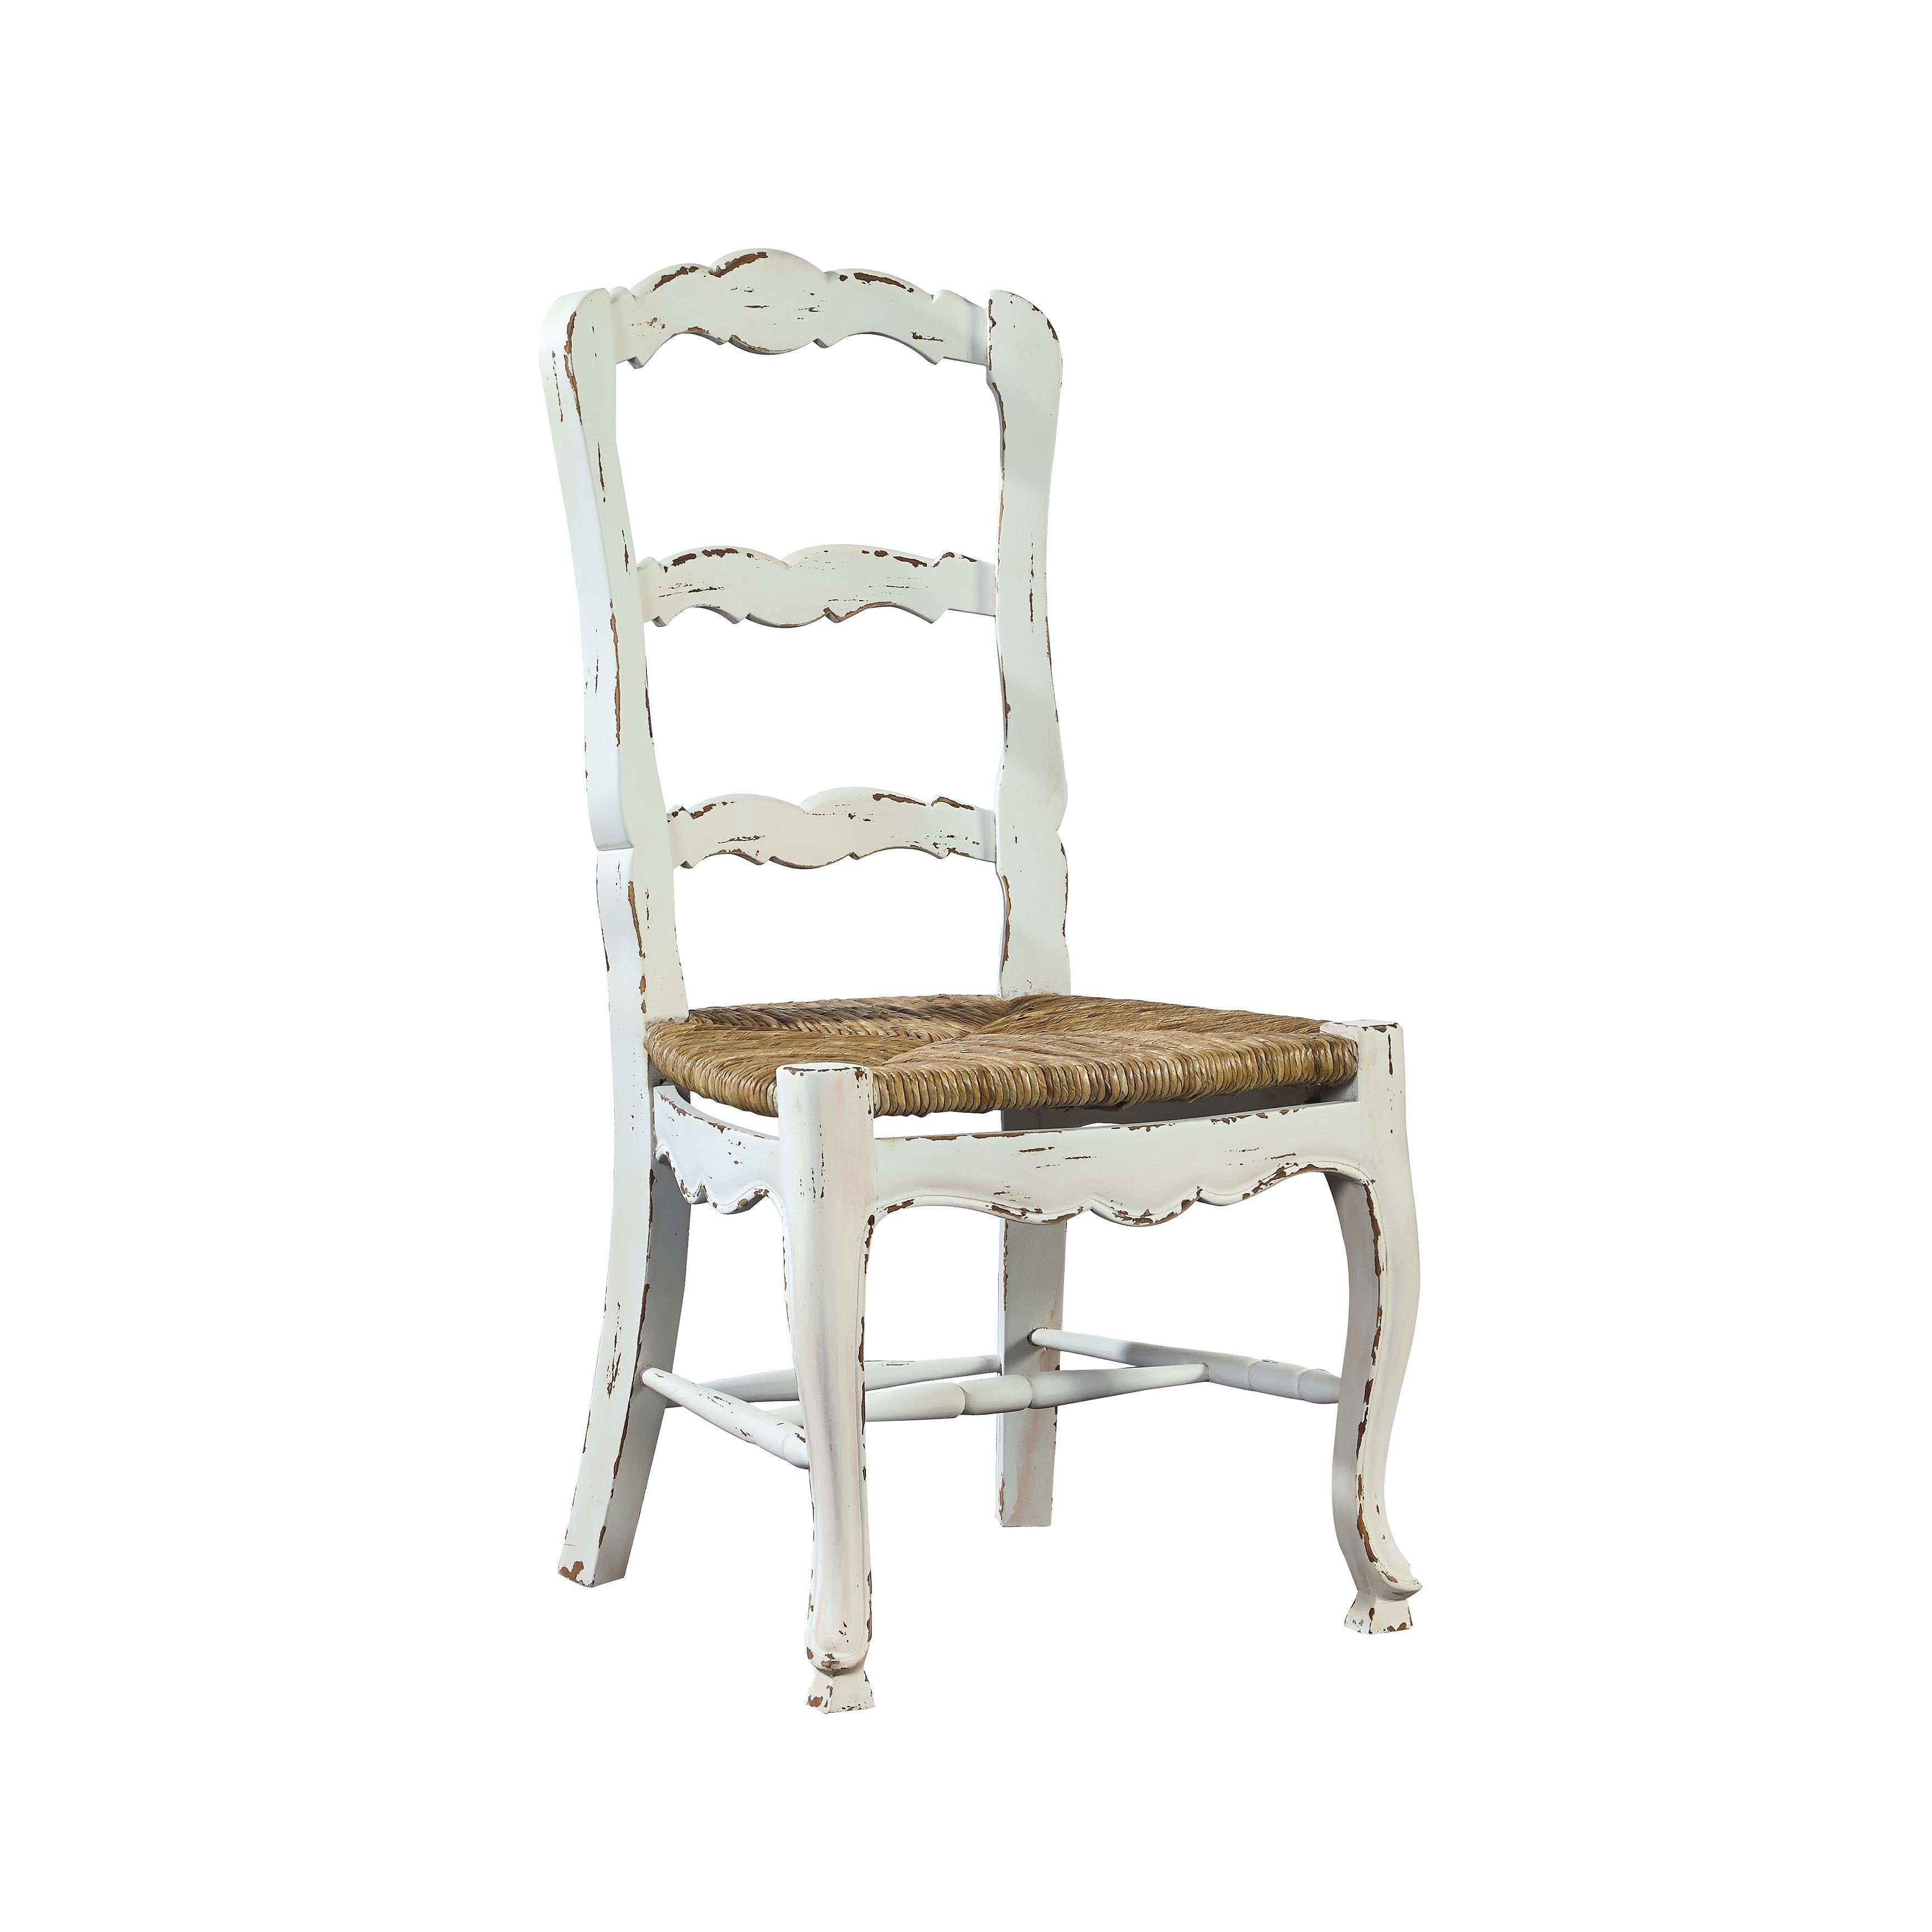 Common Home Provincial Ladderback Chair (Set of 2), White...